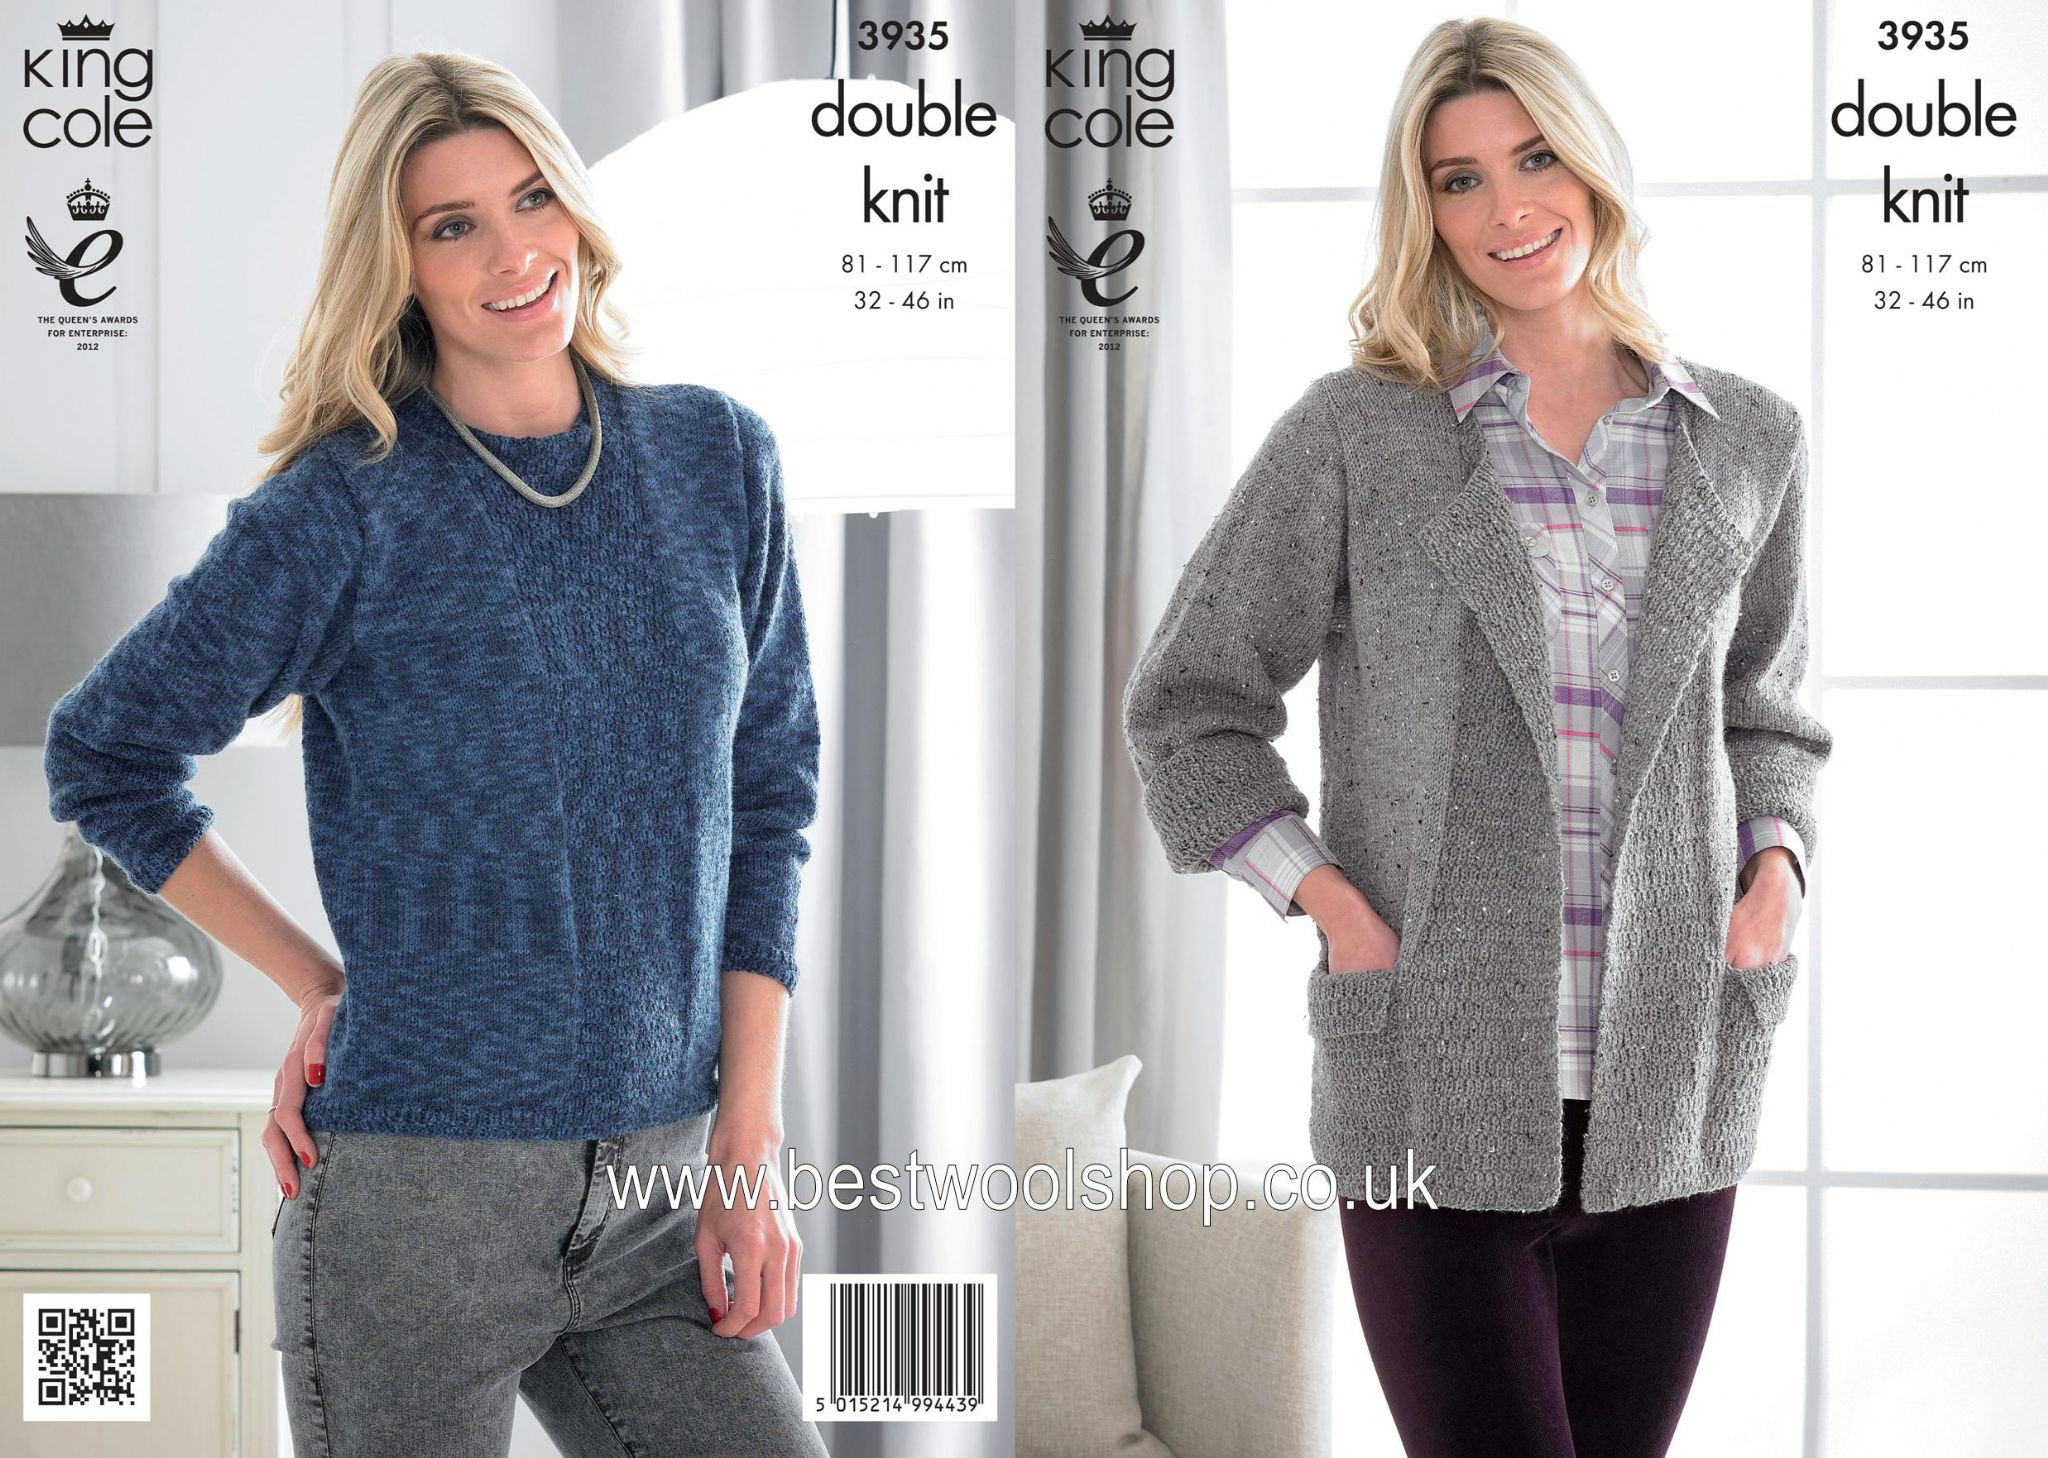 3935 - KING COLE MOODS DK CARDIGAN WITH POCKETS & SWEATER KNITTING ...